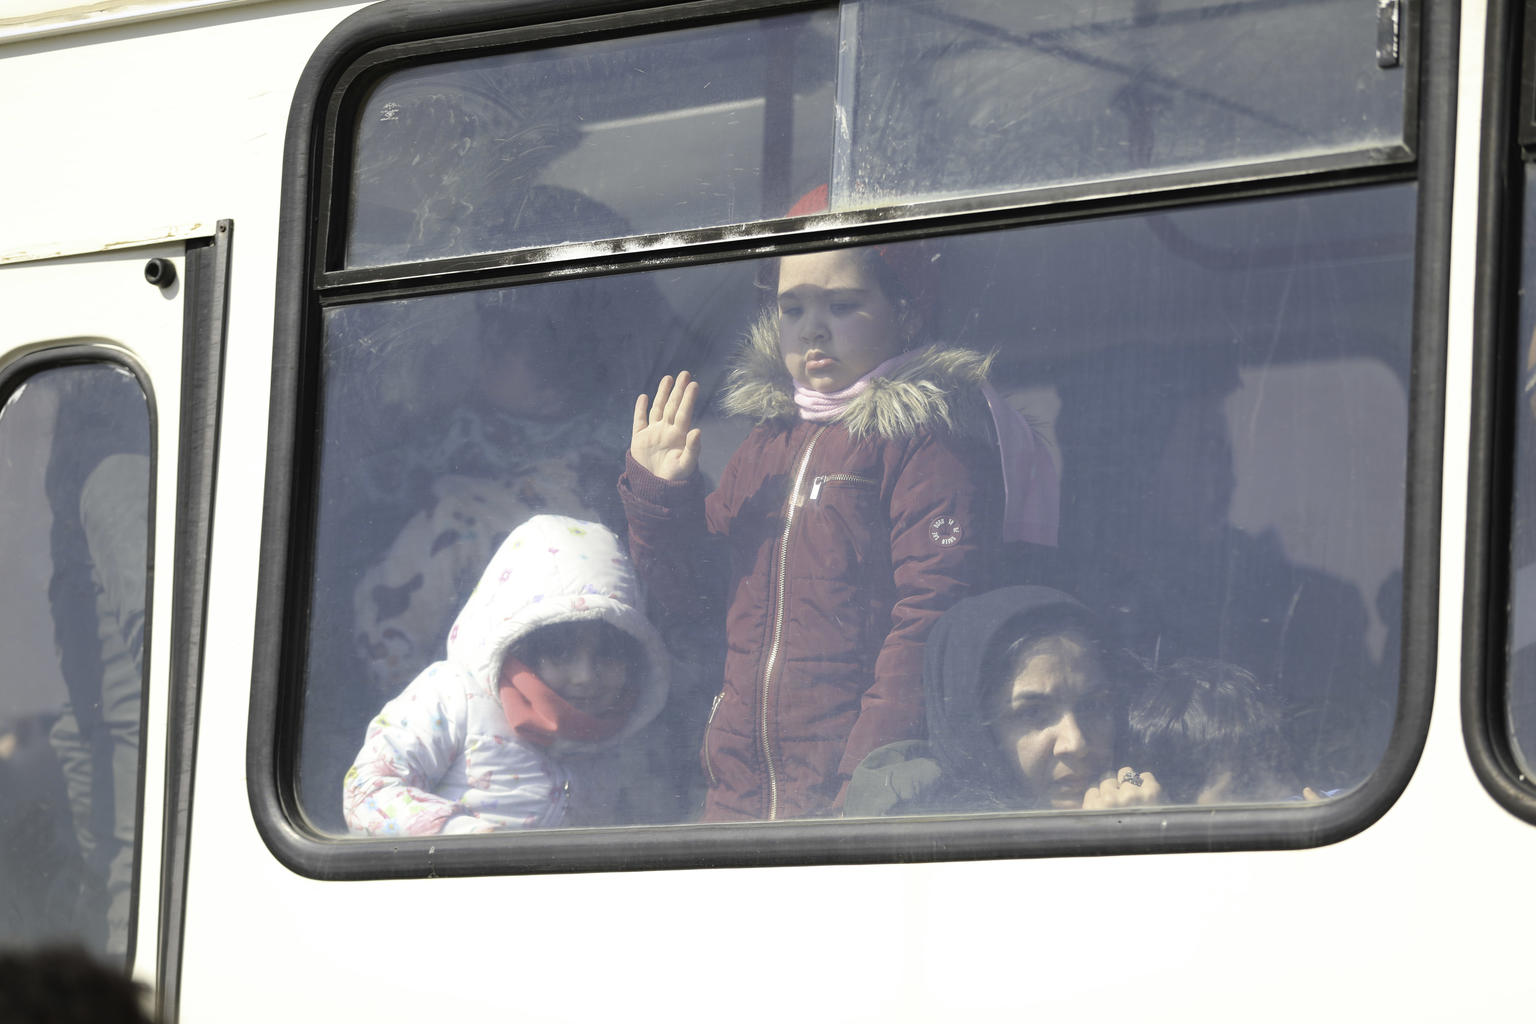 Child looking out from the window of a bus